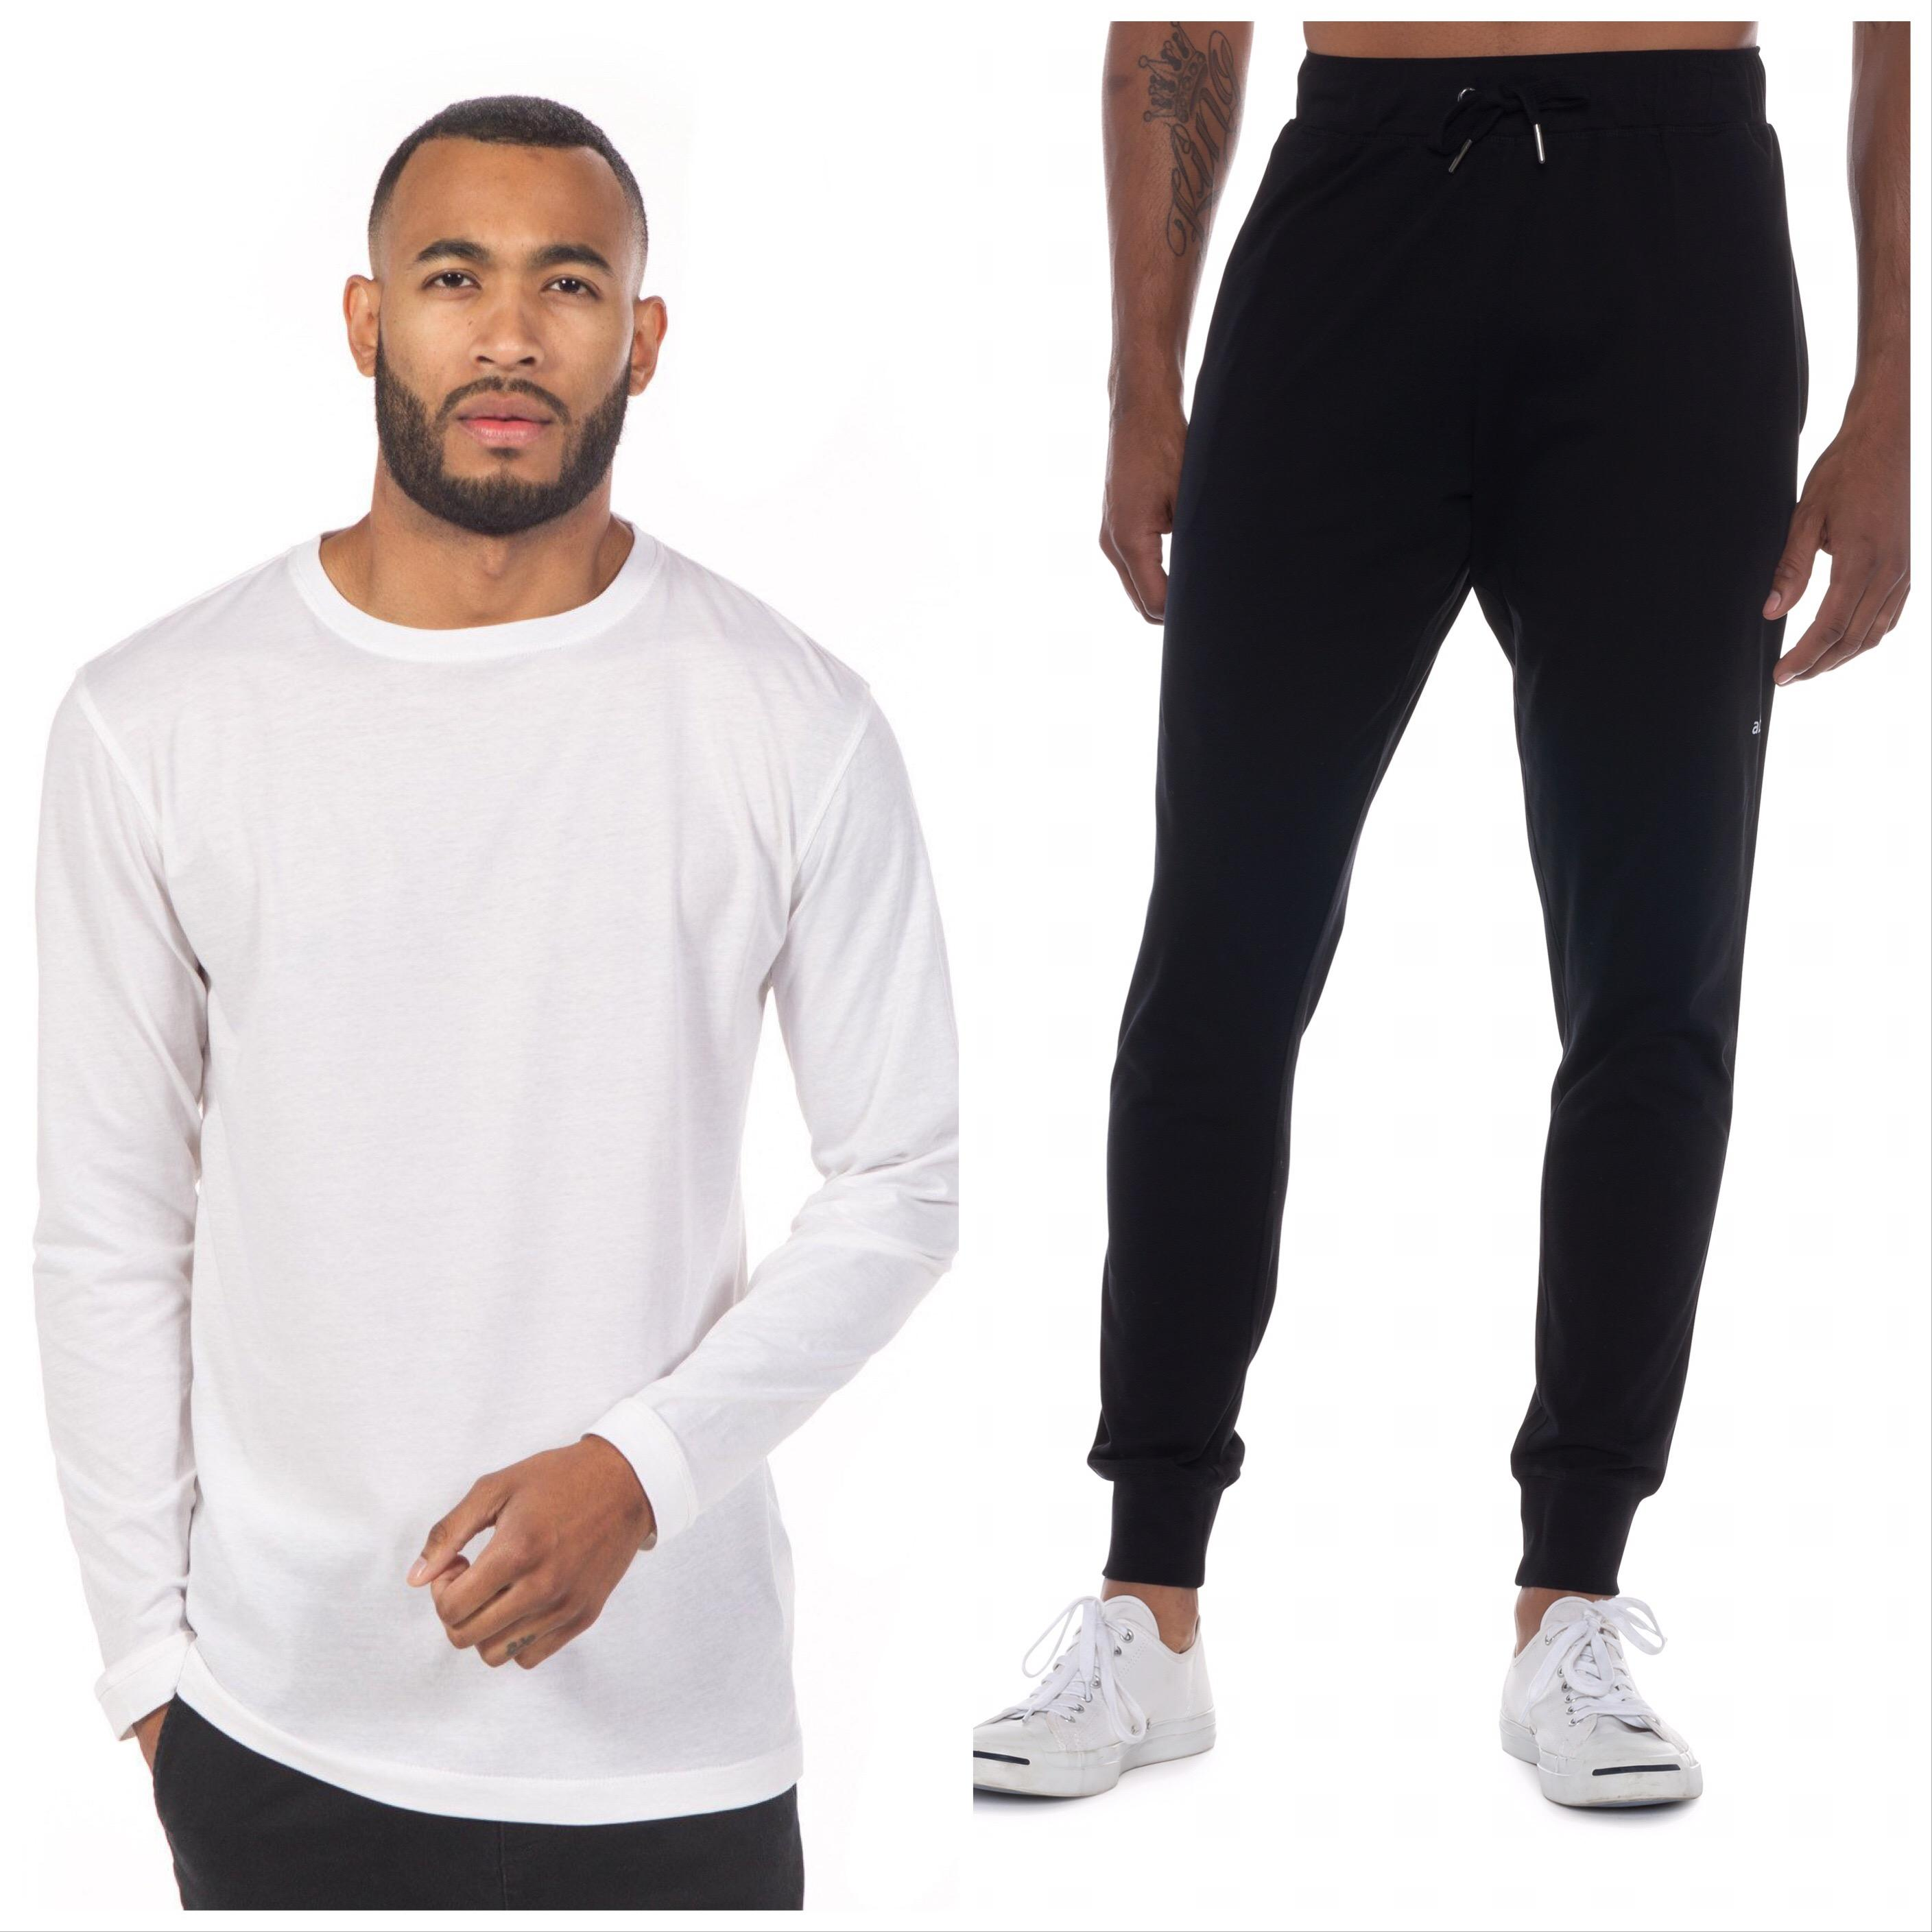 For him - check out this{ }Long Sleeve Tee ($60) paired with{ } the black Jersey Lounge Pants ($115) from Ably.{ } { }Whatever his routine, everybody's looking to be comfortable and this look nails it! (Image: Ably Apparel)